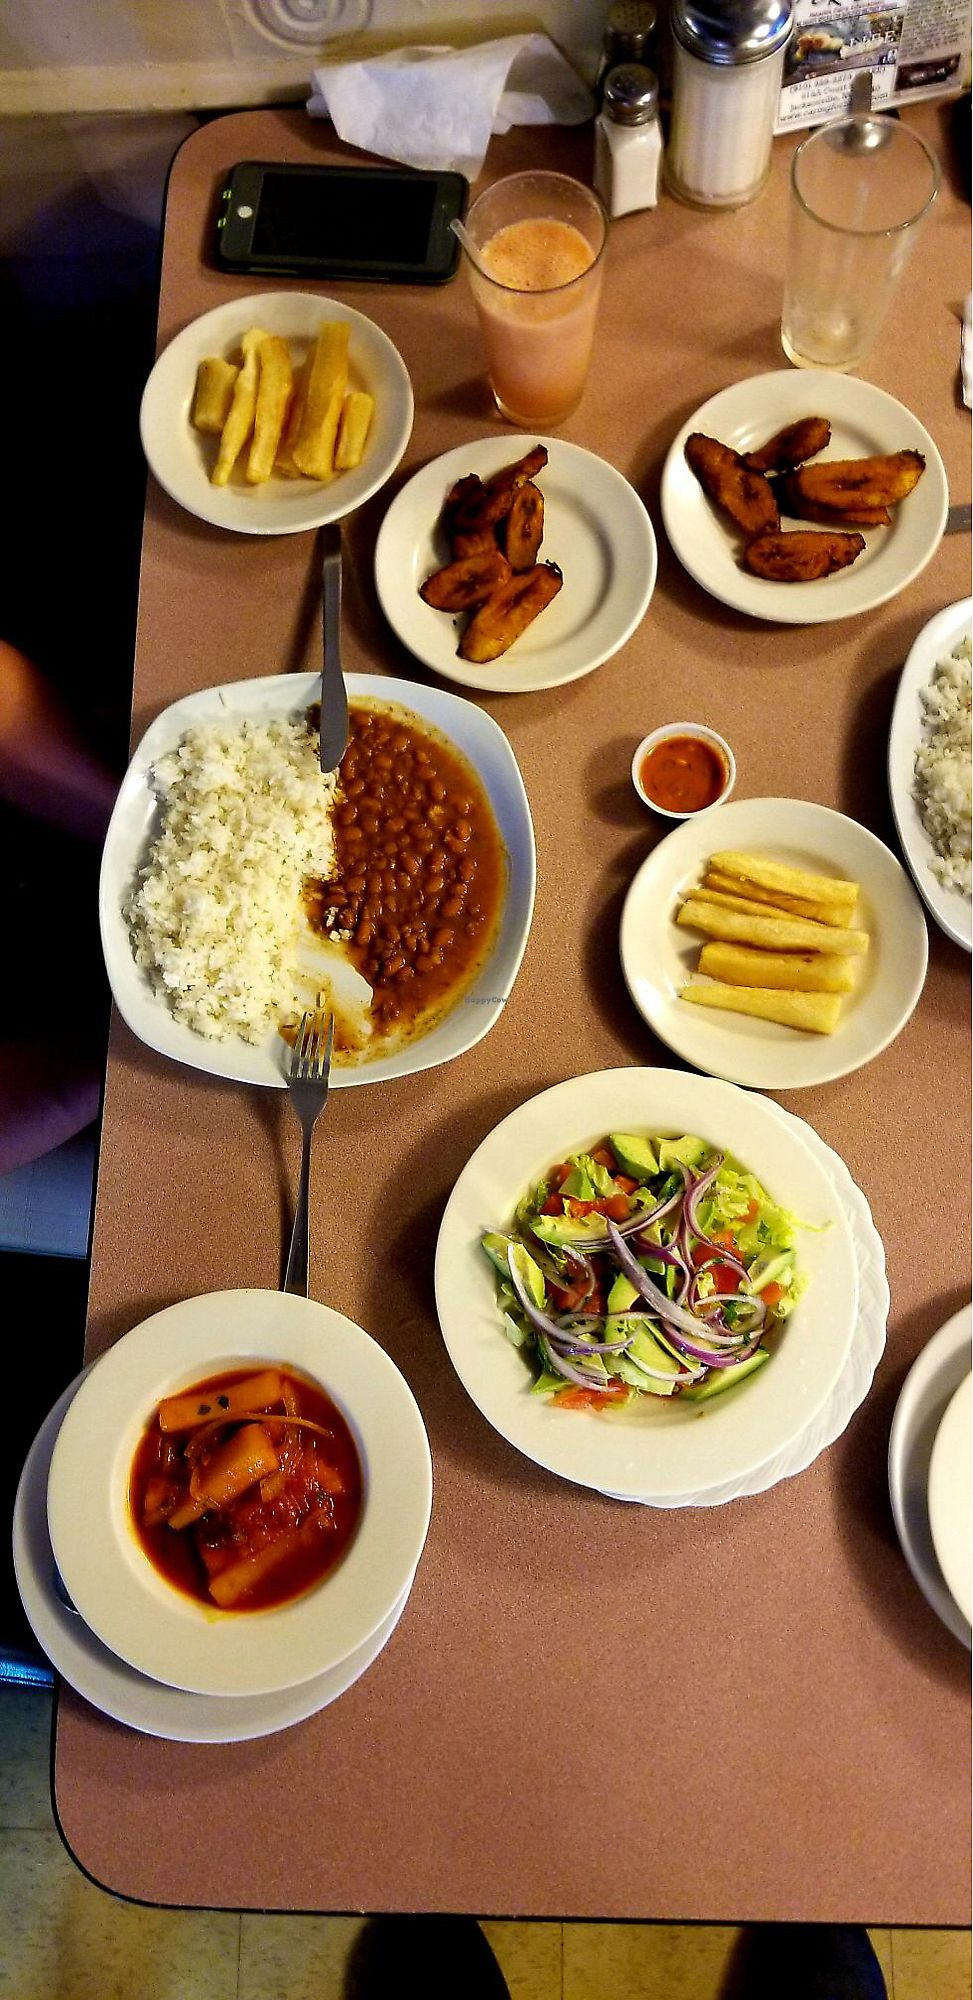 """Photo of Liliana's Colombian Restaurant & Bakery  by <a href=""""/members/profile/LiloVee"""">LiloVee</a> <br/>Most of their vegan options <br/> April 3, 2018  - <a href='/contact/abuse/image/105650/380392'>Report</a>"""